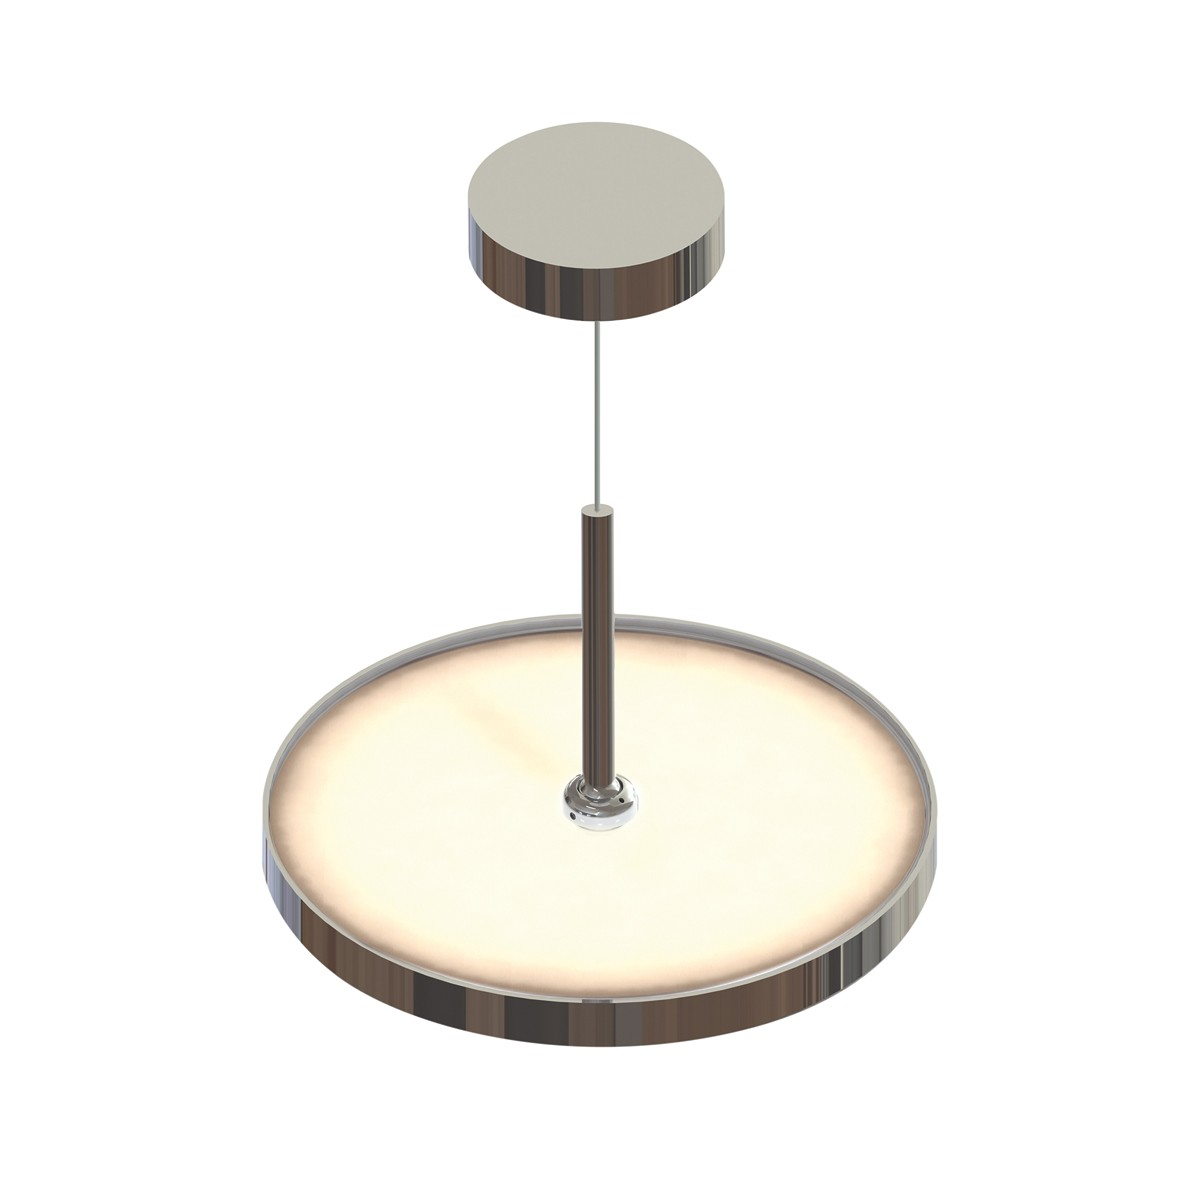 Top Light Sun Swing Ceiling Up Light Pendelleuchte, Ø: 9 cm